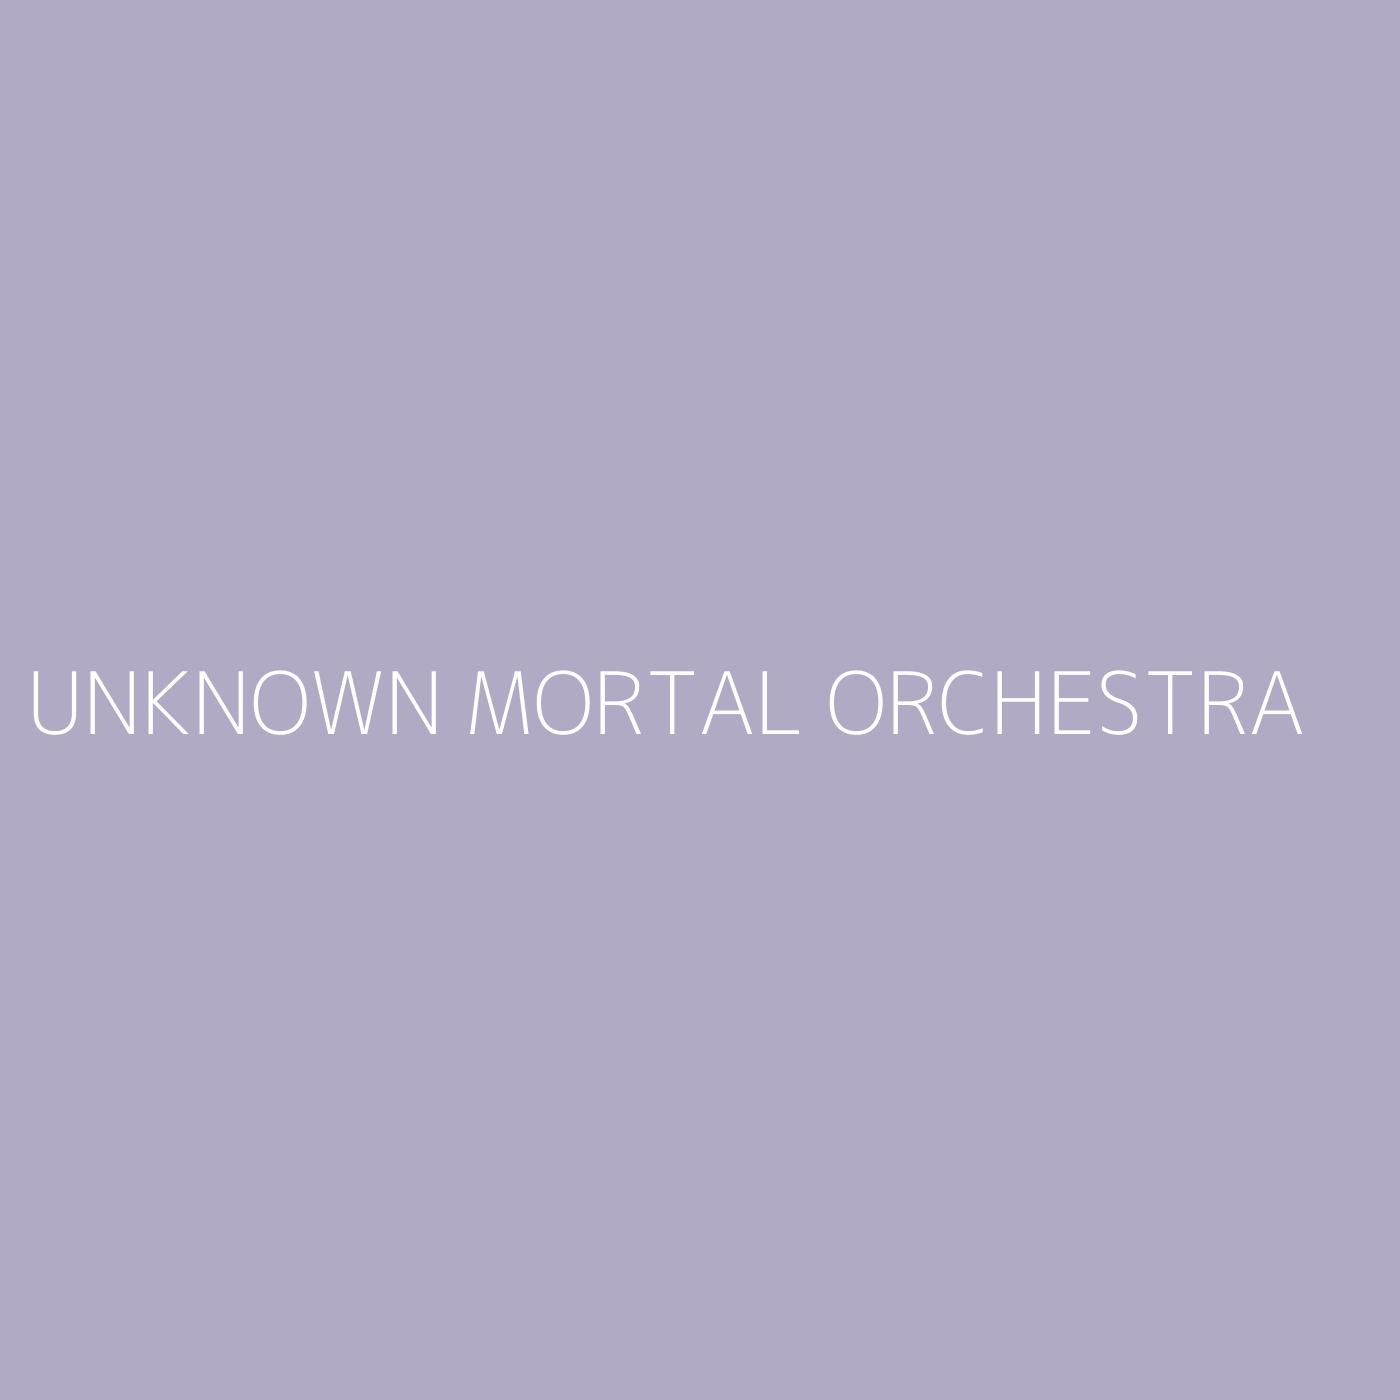 Unknown Mortal Orchestra Playlist Artwork